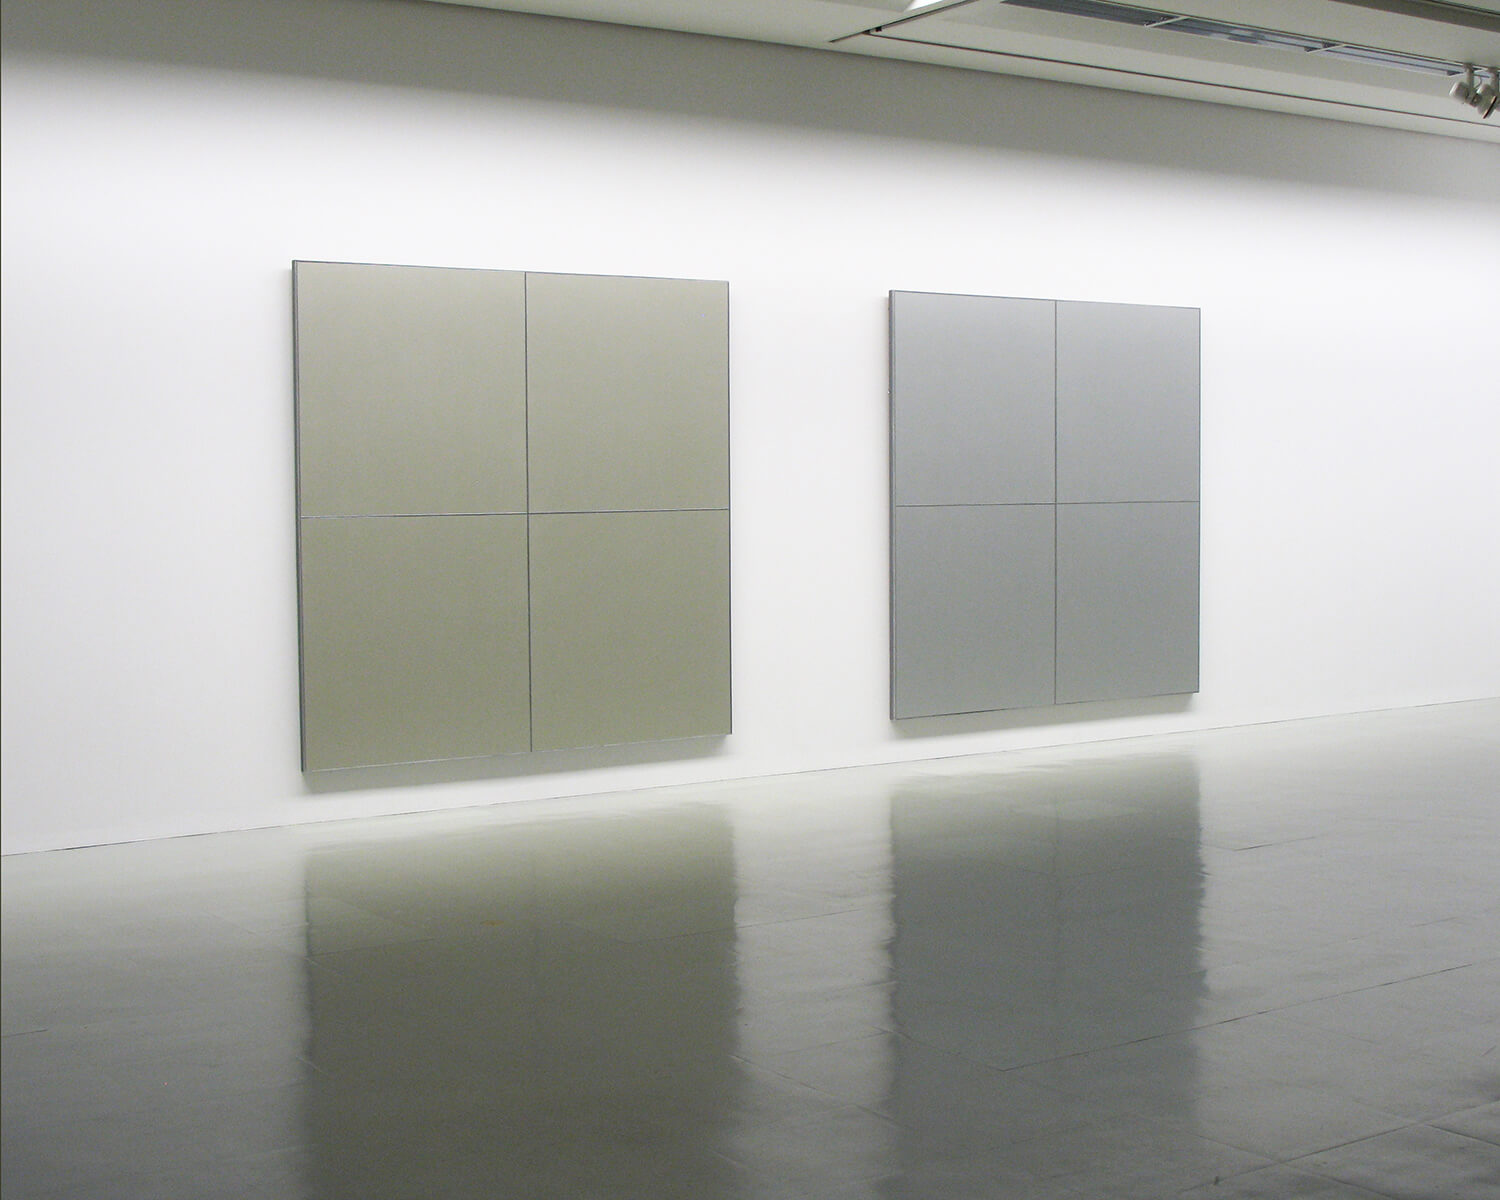 gold 1978-79<br>acrylic on canvas with aluminum strips (4 panels), 243.8 x 243.8 cm / col. Nagoya City Art Museum (left)<br>silver 1978-79<br>acrylic on canvas with aluminum strips (4 panels), 243.8 x 243.8 cm / col. Nagoya City Art Museum (rght)